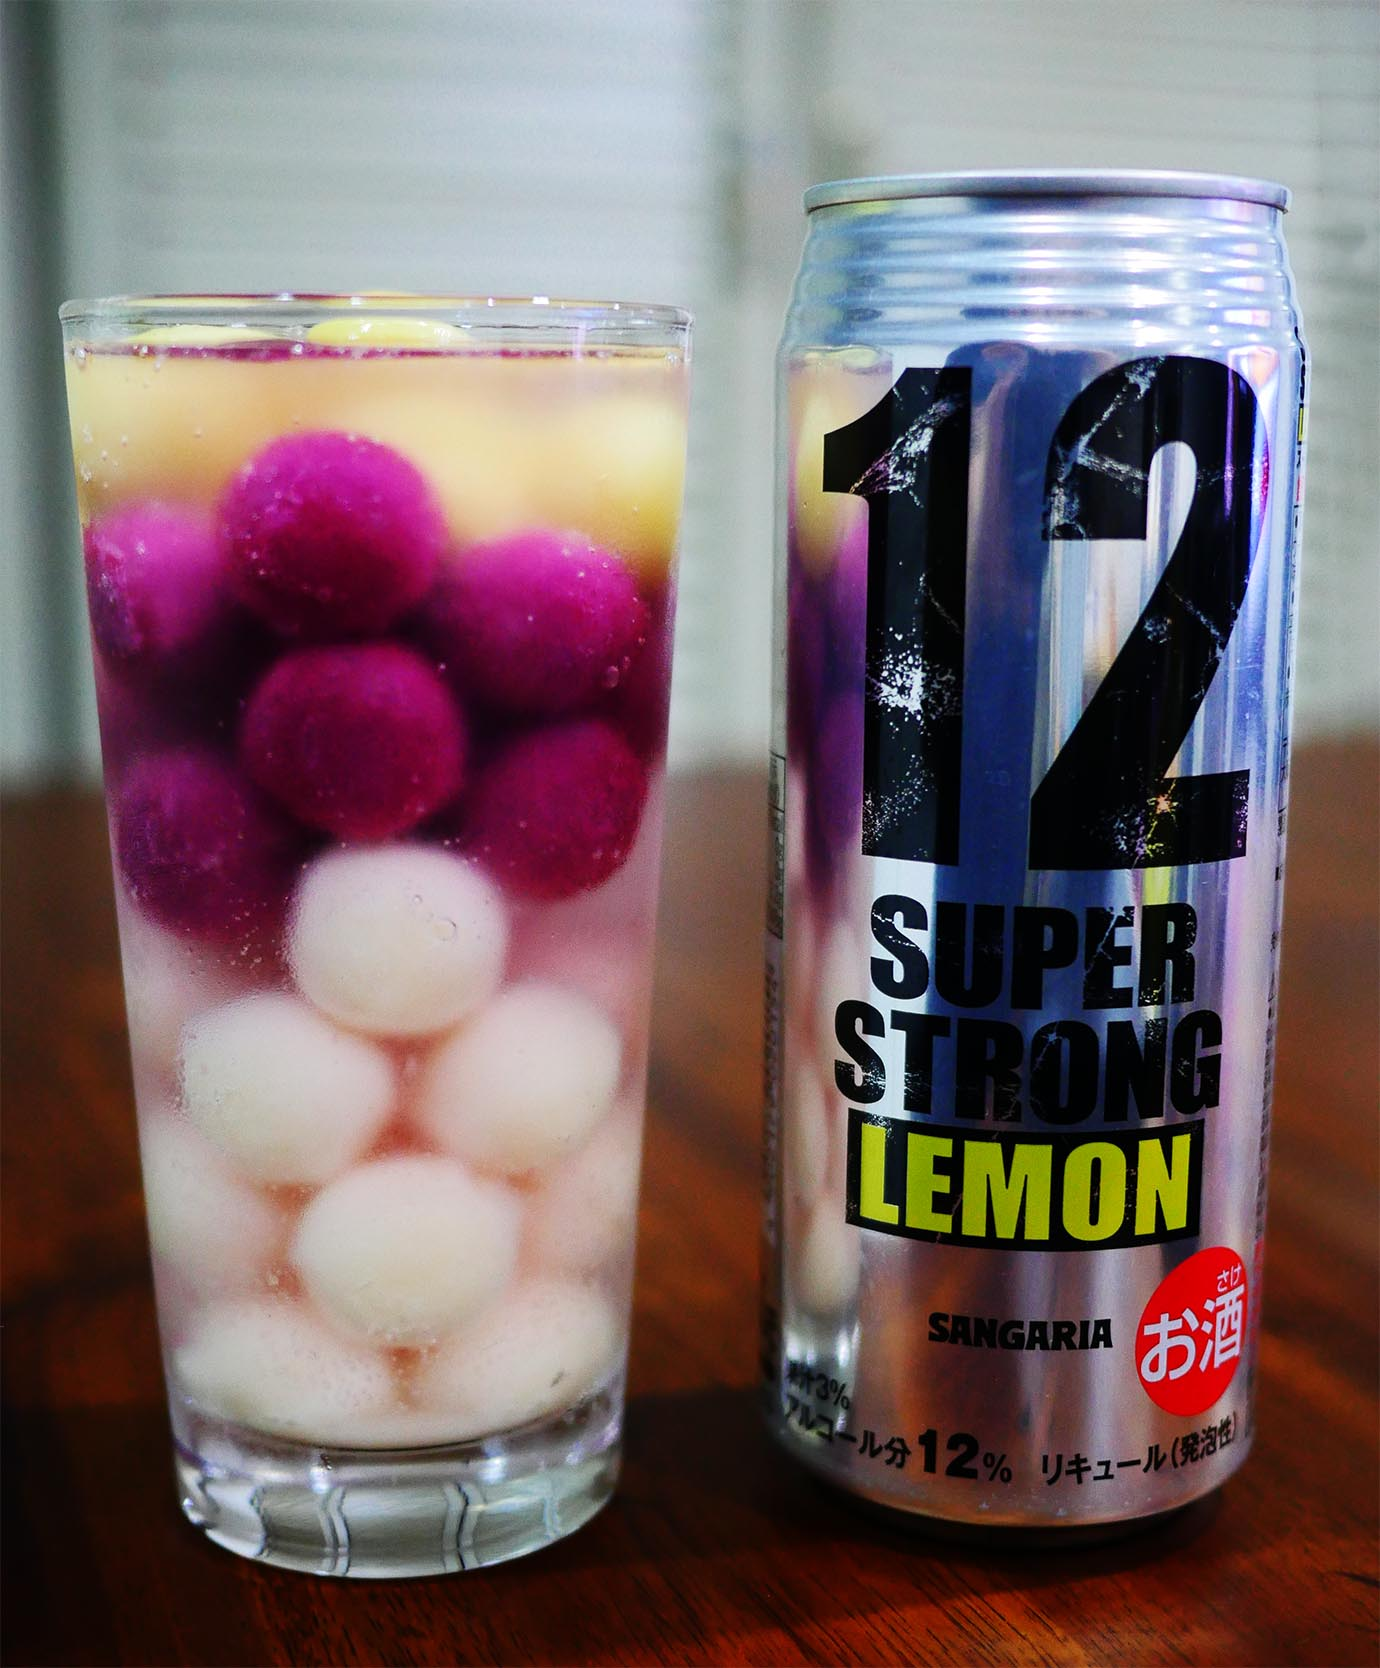 lawson-super-strong-lemon14